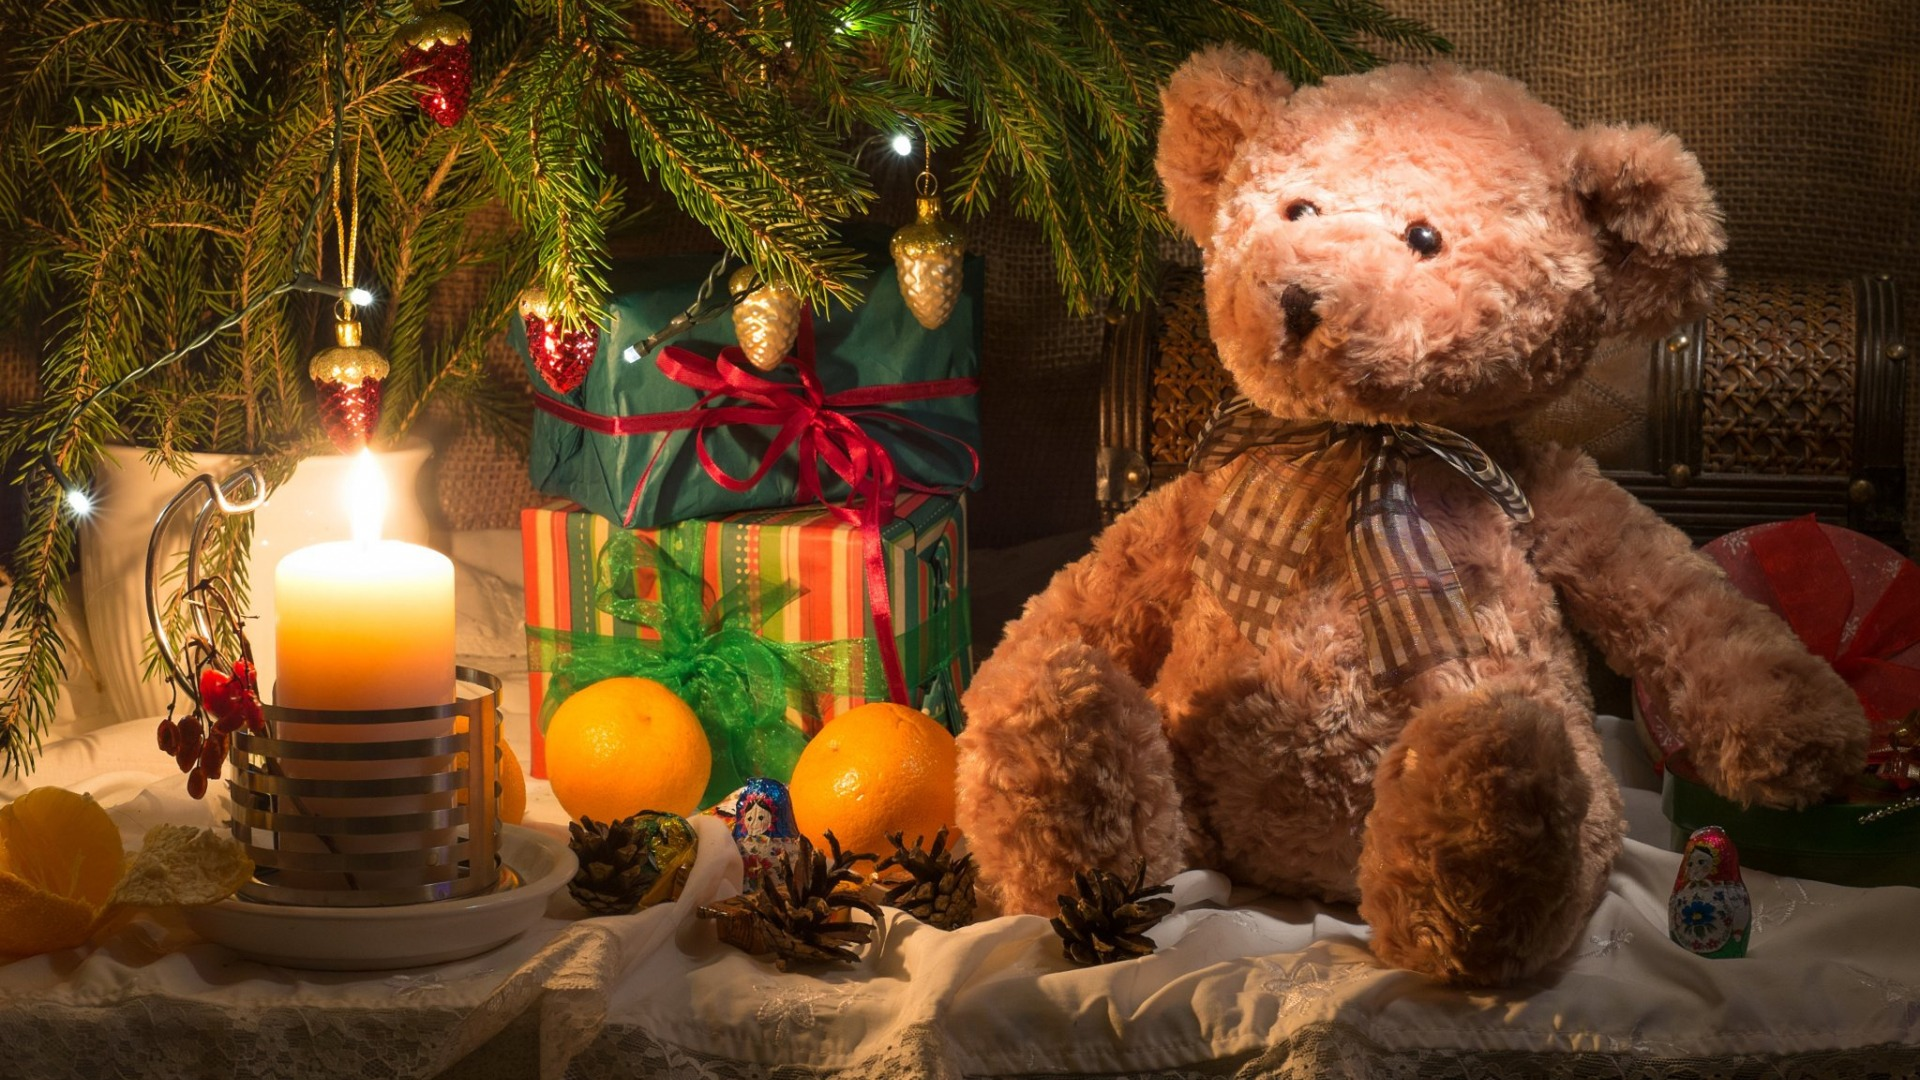 Download-toys-new-year-candle-spruce-oranges-branch-bear-gifts-fabric-tree-fruit-wallpaper-wp3804832